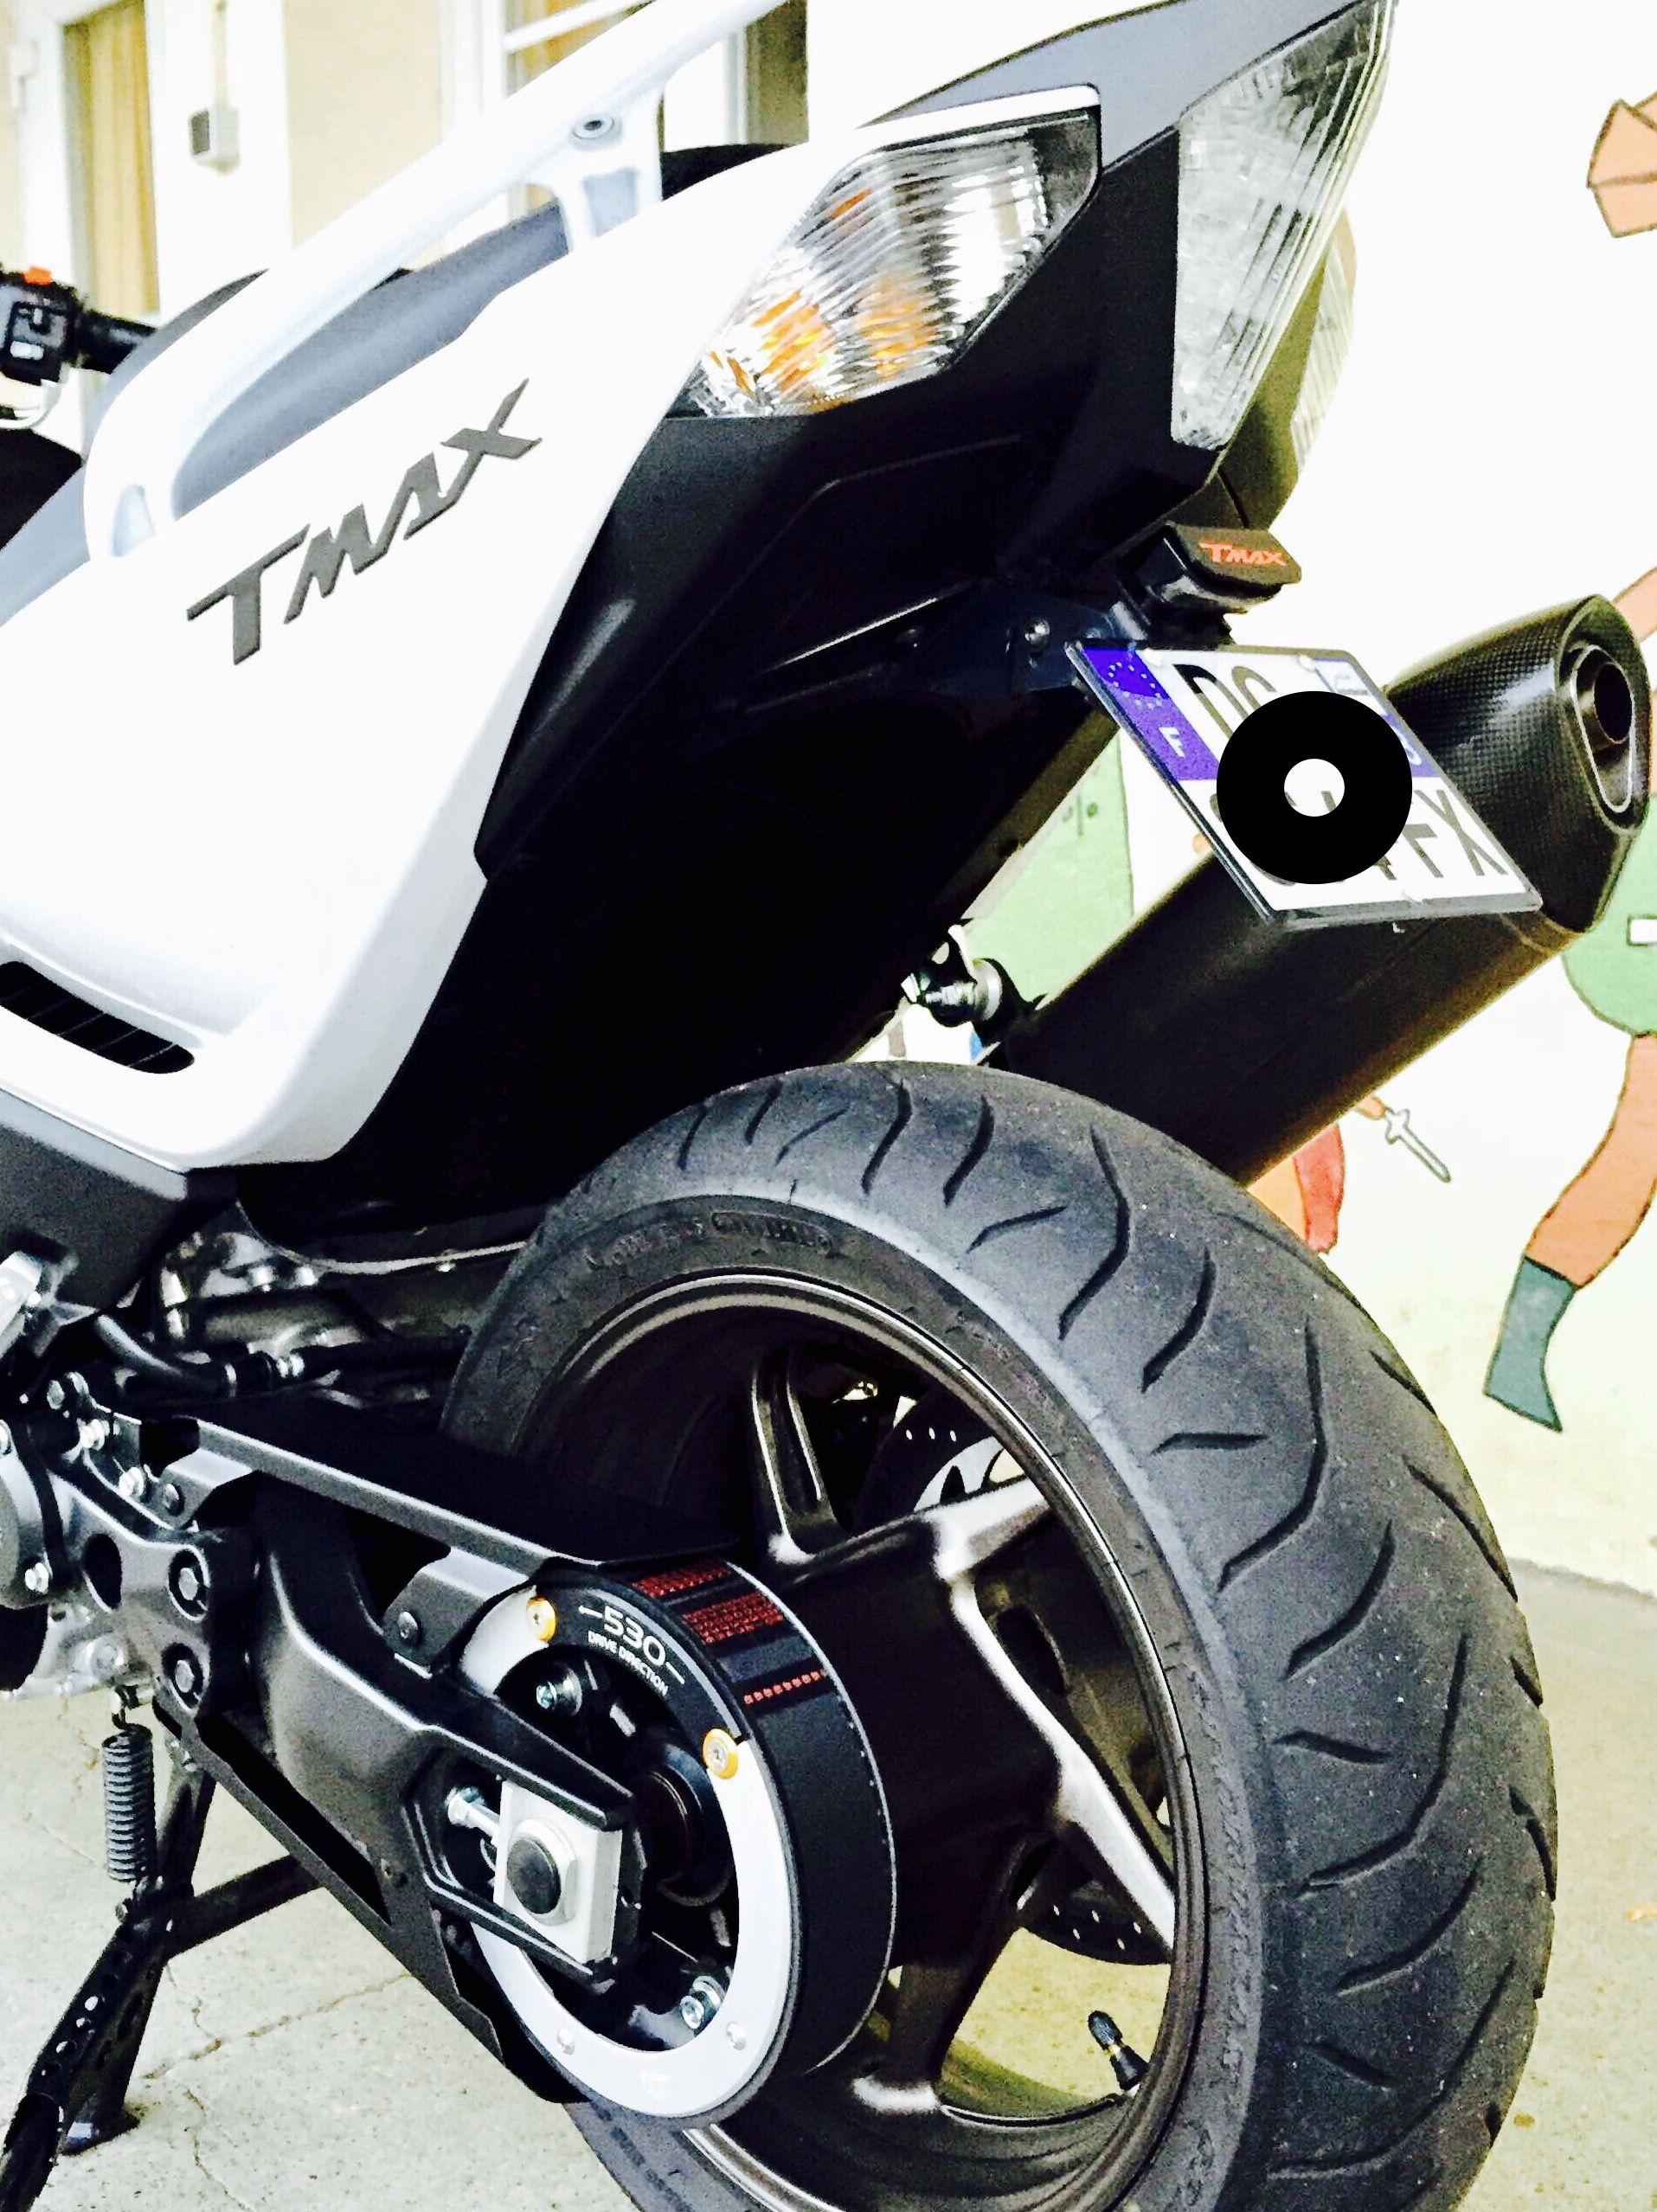 tmax 530 akrapovic cache rizoma protege courroie homemade yamaha 39 s max series pinterest. Black Bedroom Furniture Sets. Home Design Ideas